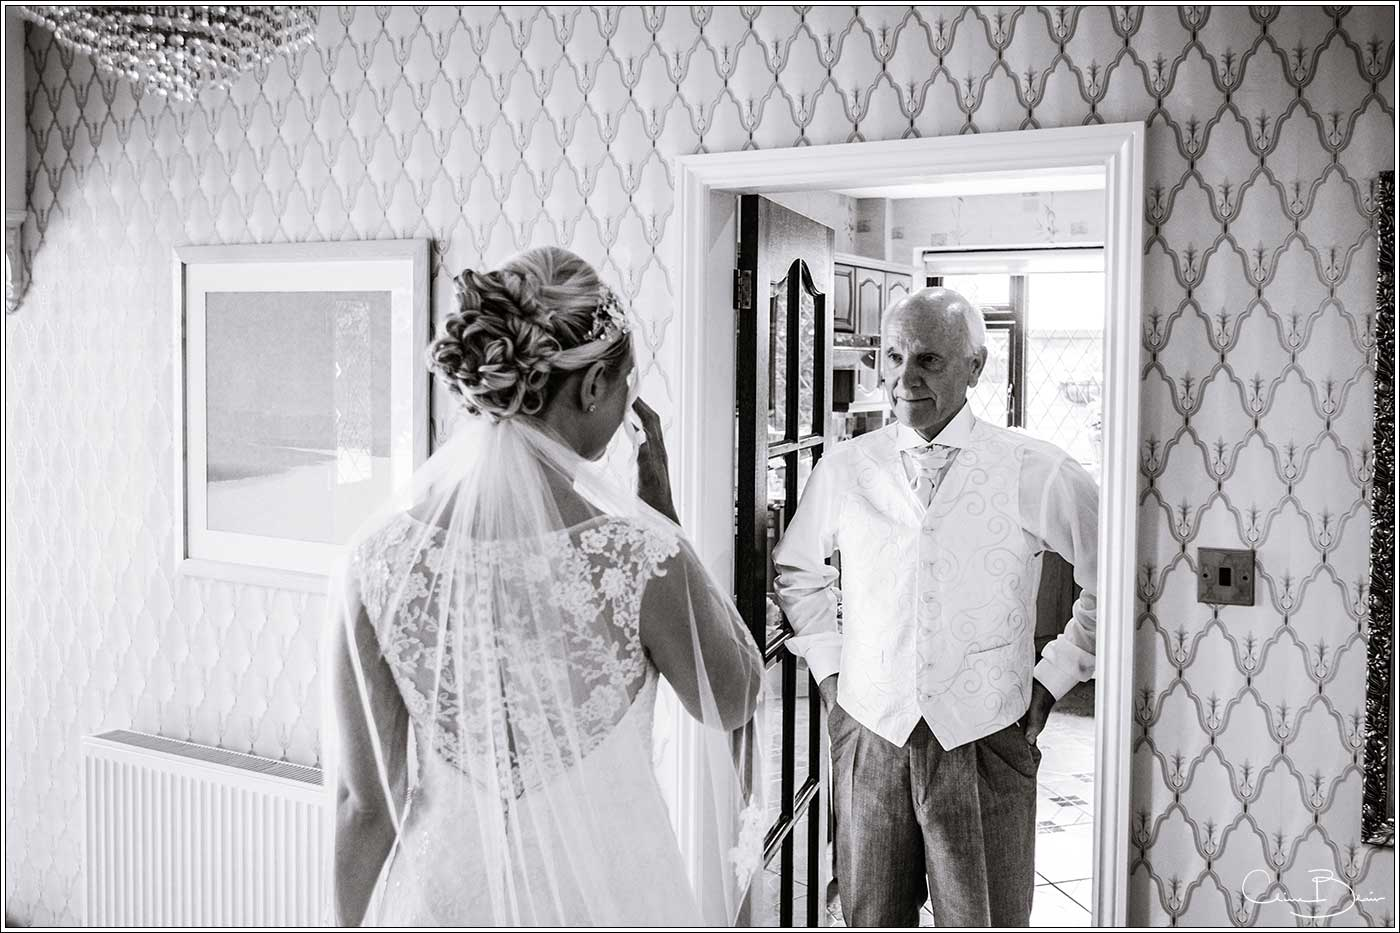 Coombe Abbey wedding photography showing father seeing bride